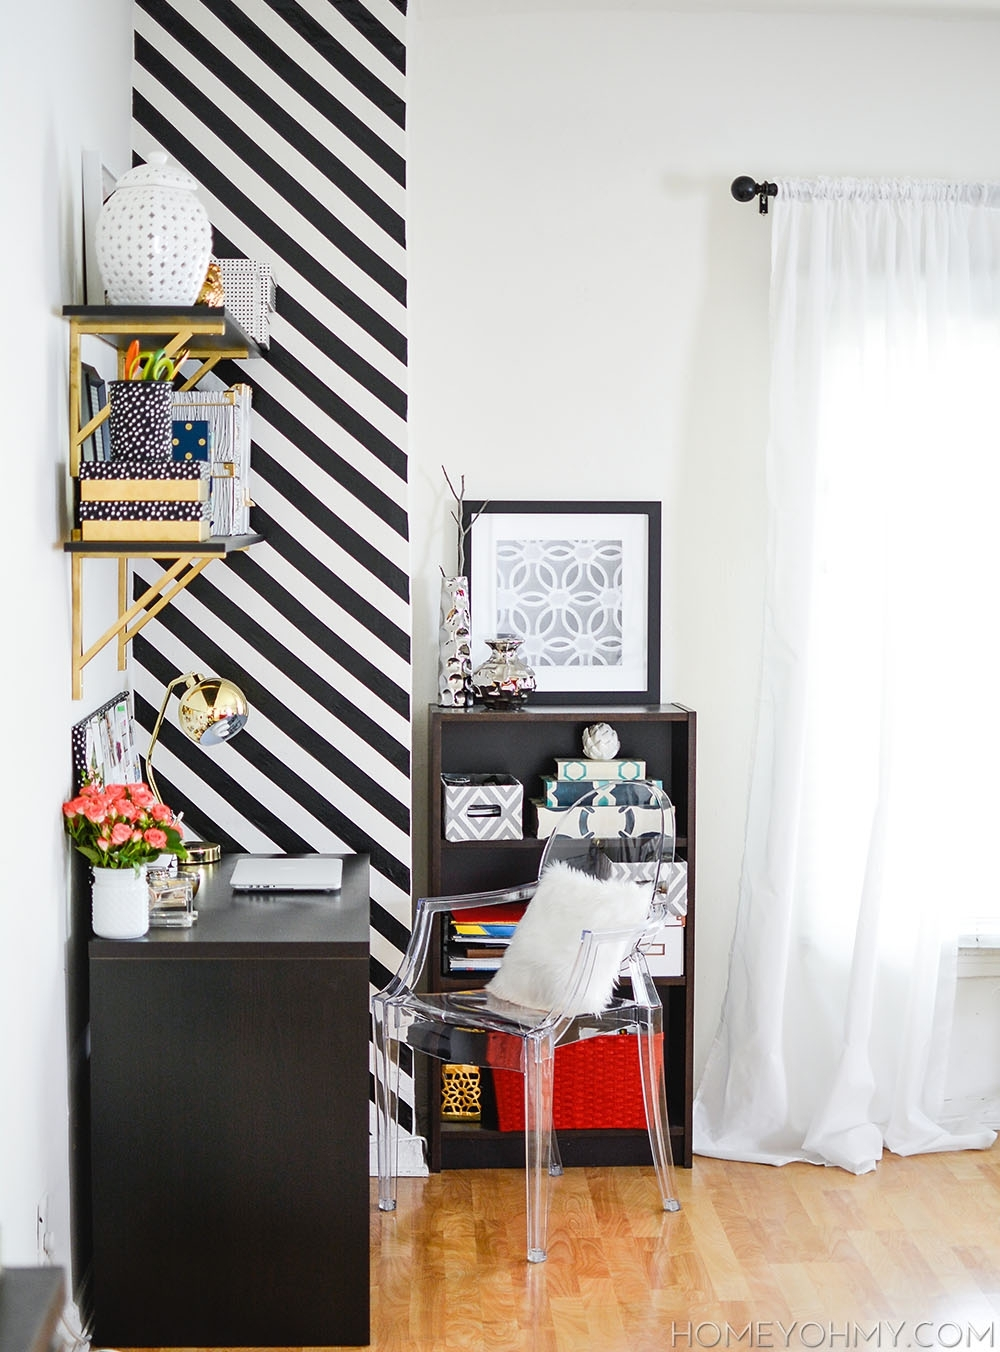 How To Create A Striped Accent Wall Without Paint – With Newest Stripe Wall Accents (View 6 of 15)